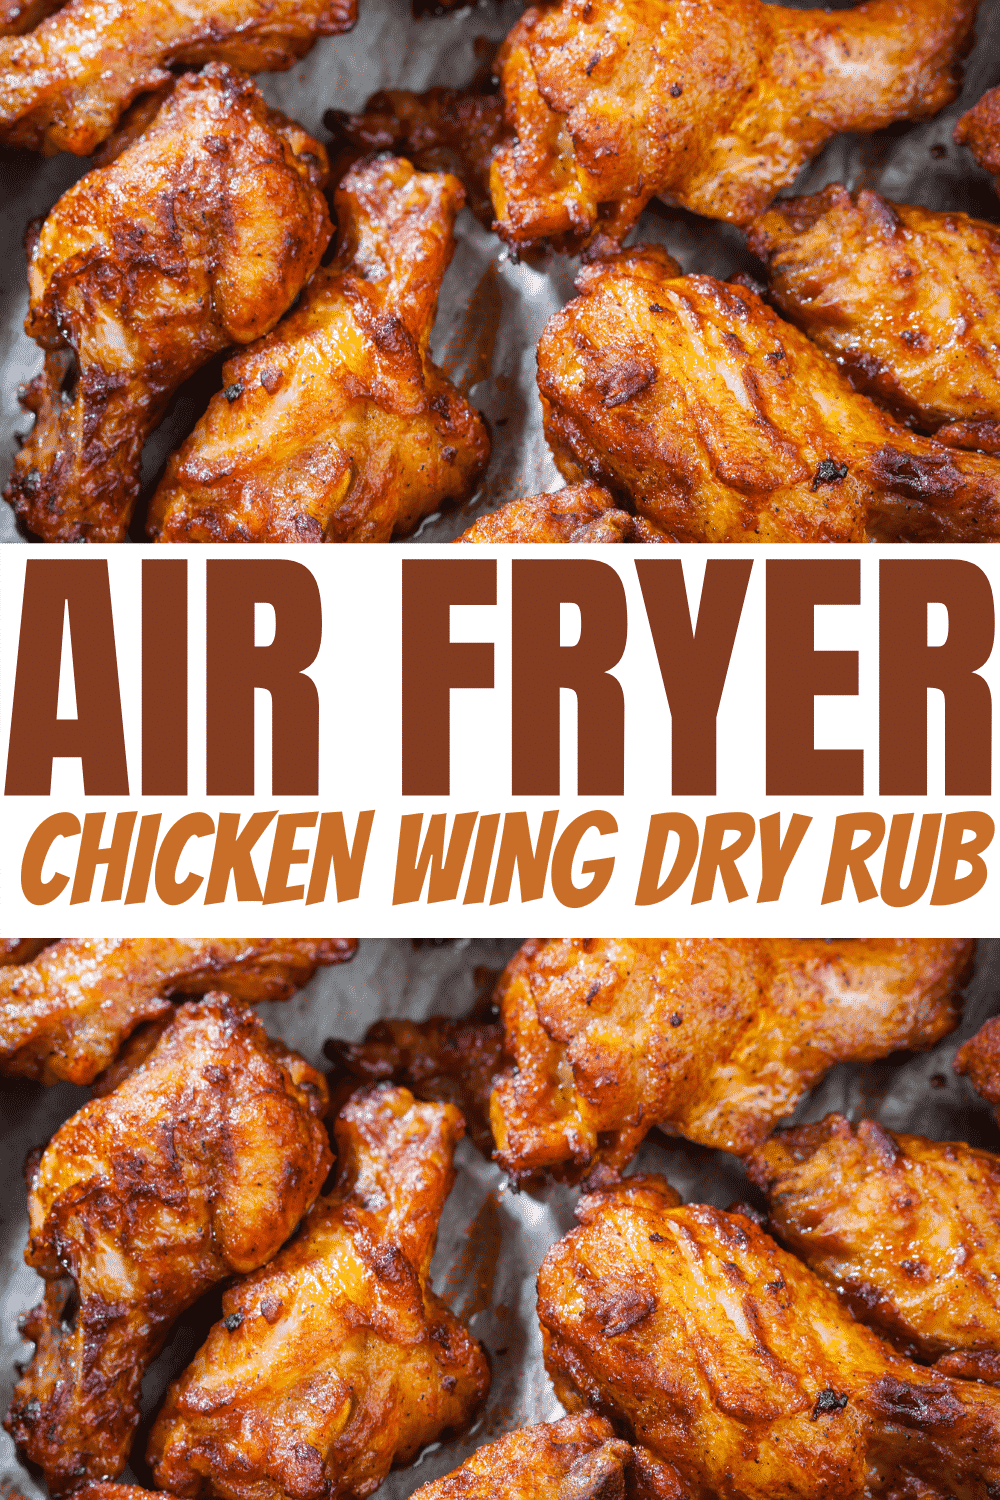 Air Fryer Chicken Wing Dry Rub makes the juiciest meat with no sauce in sight! You just need 6 pantry staple spices for the best homemade dry rub on wings, thighs, legs, or even a roasted whole chicken! via @vegetarianmamma